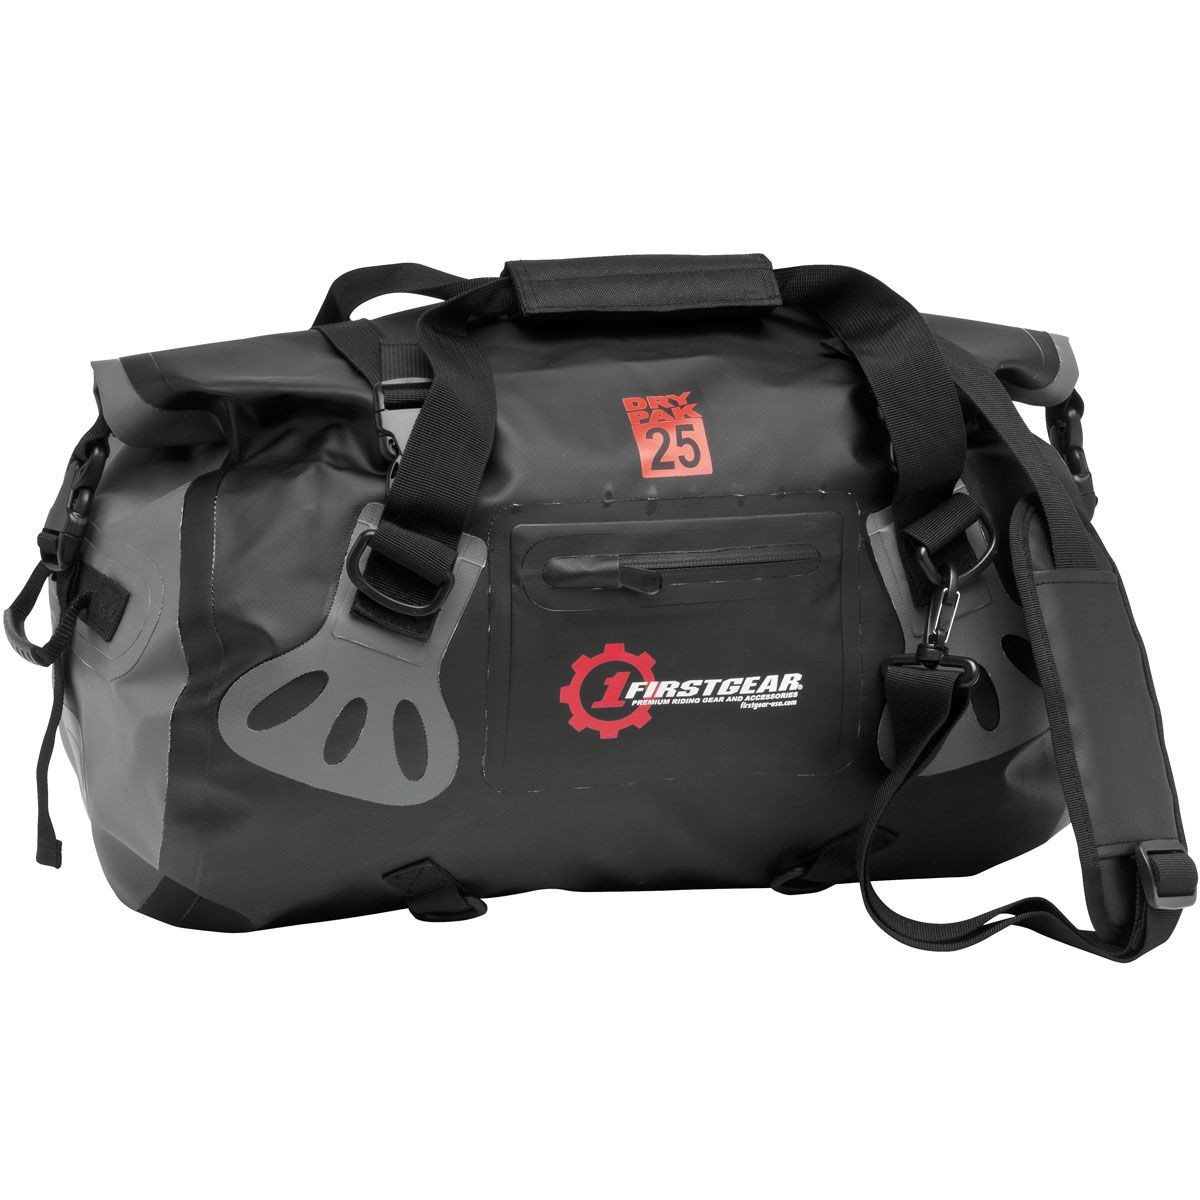 Firstgear Torrent Waterproof Duffel Bag Tail Bags